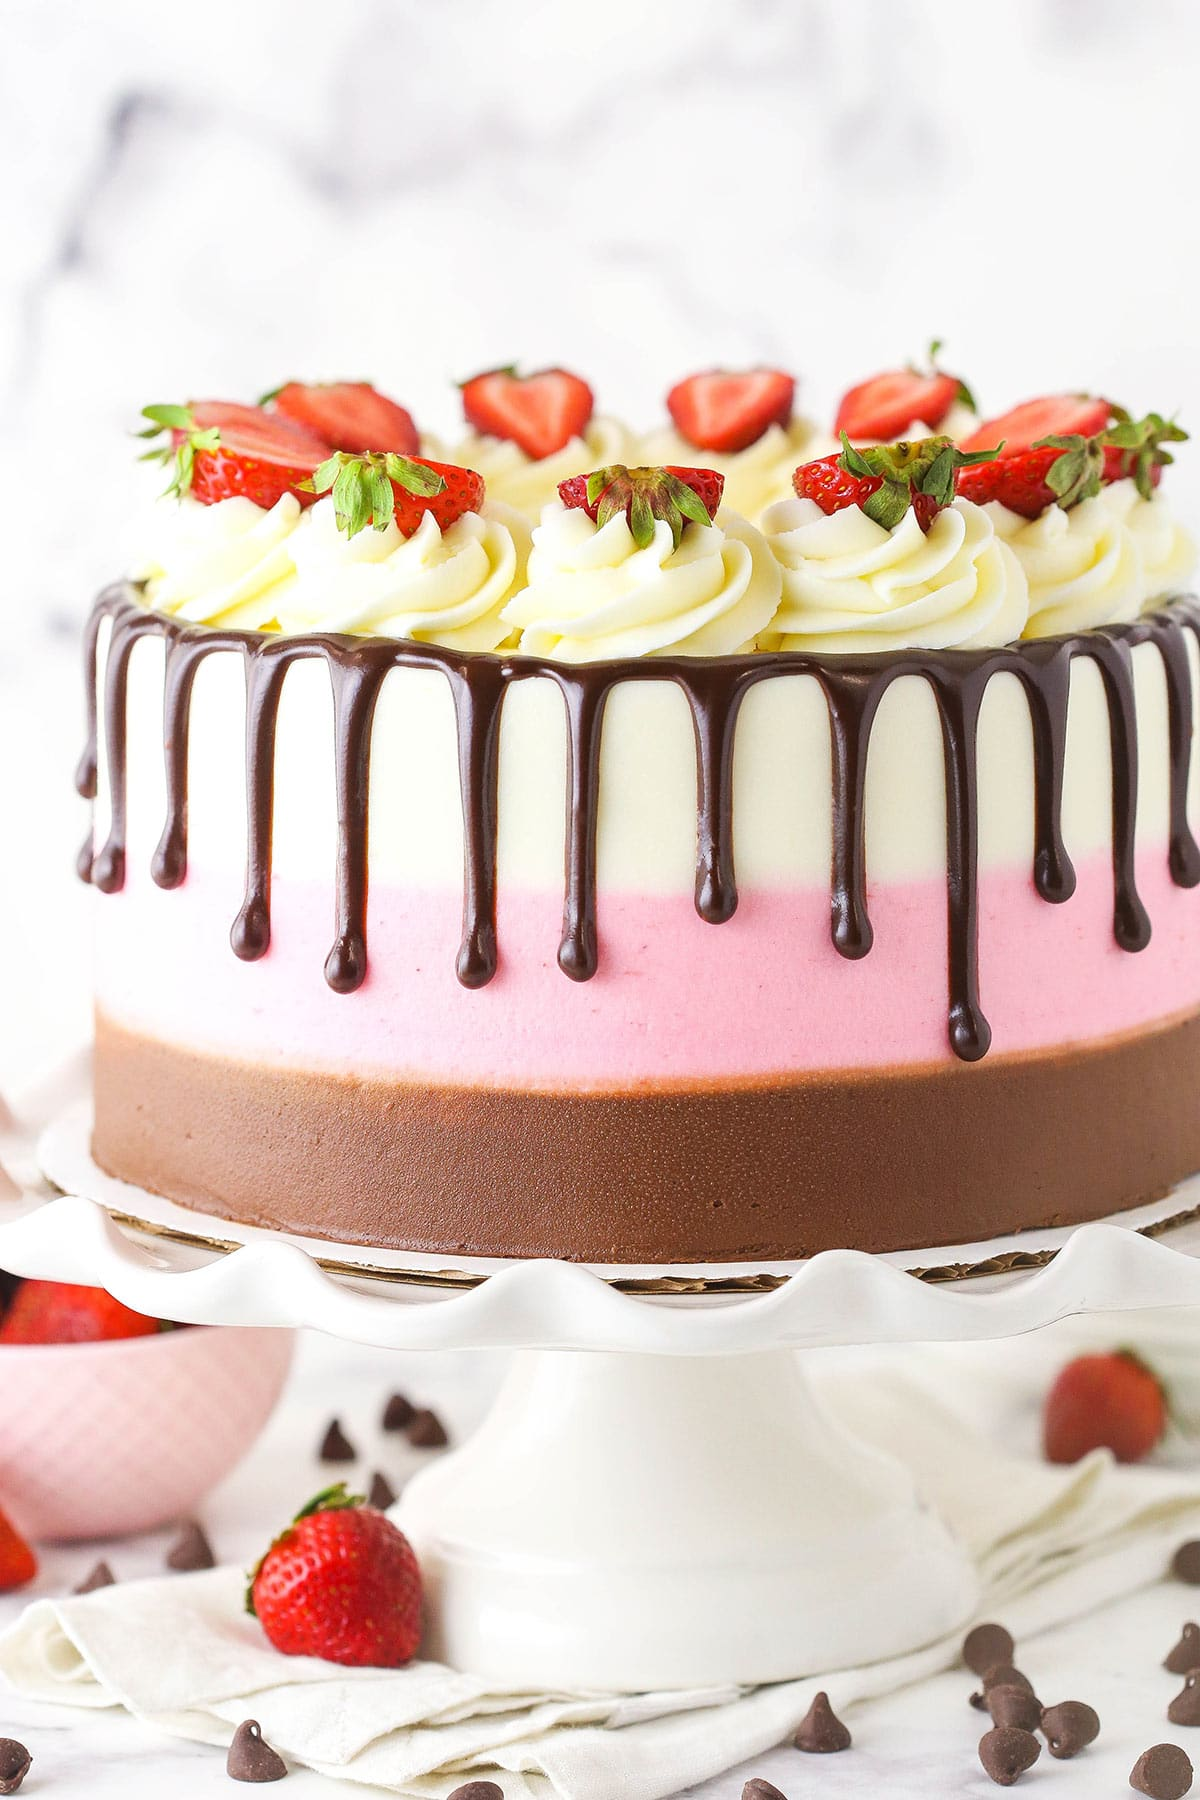 A close-up shot of a neapolitan cake with chocolate, vanilla and strawberry buttercream frosting